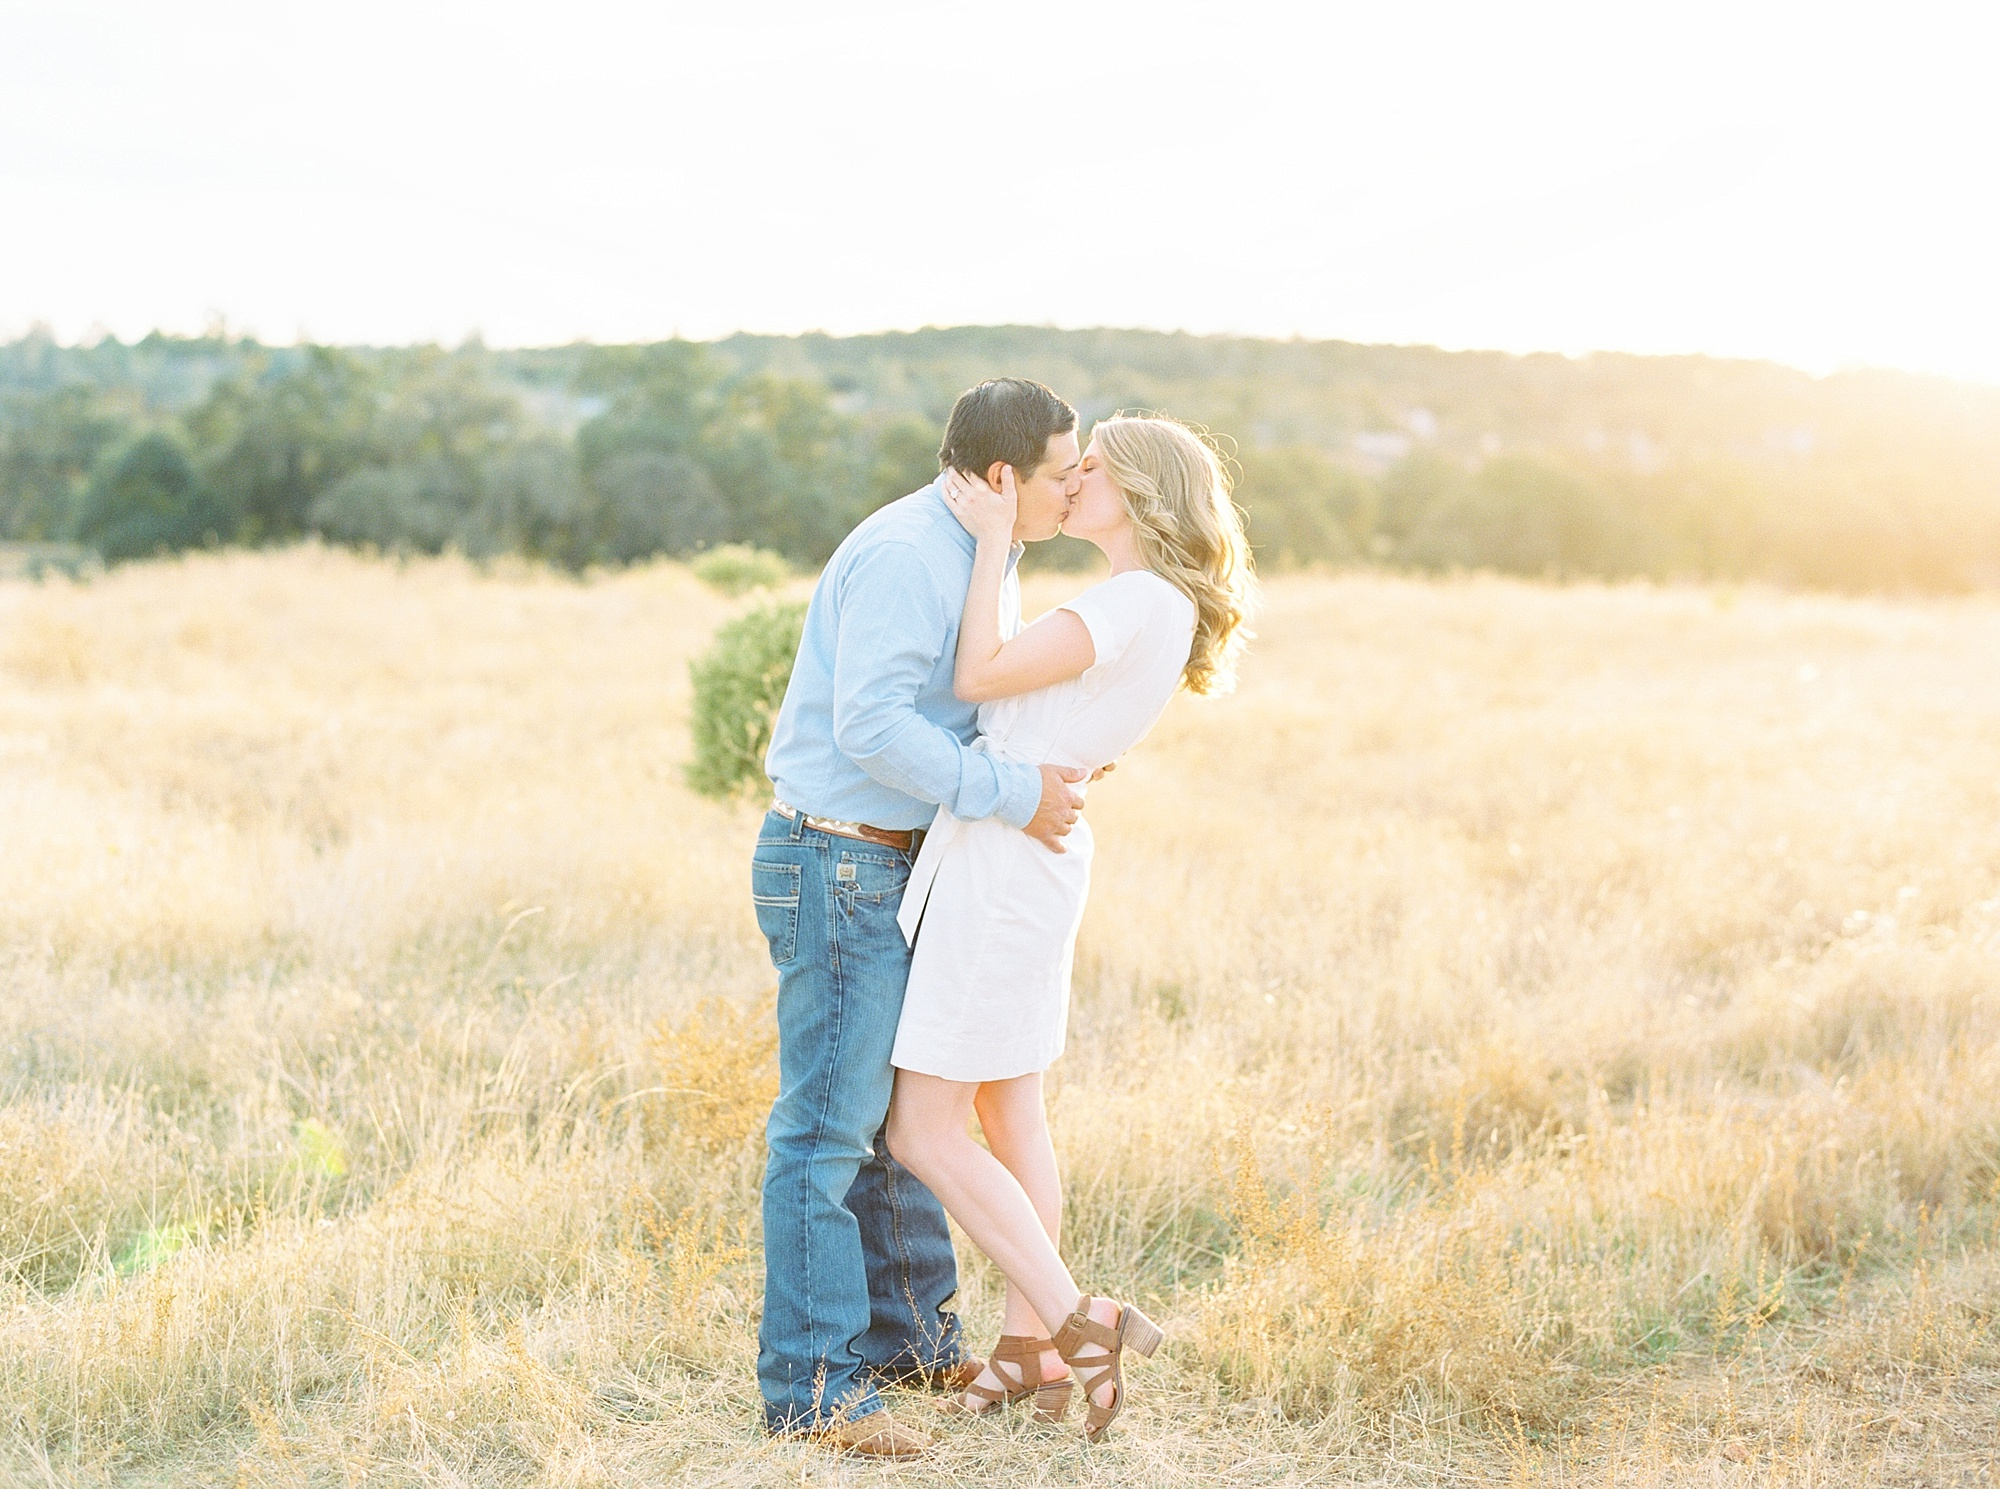 Golden Hills Engagement Session - Film Engagement Session - Ashley Baumgartner - Sacramento Wedding Photography - Stone Barn Ranch Wedding Couple_0011.jpg